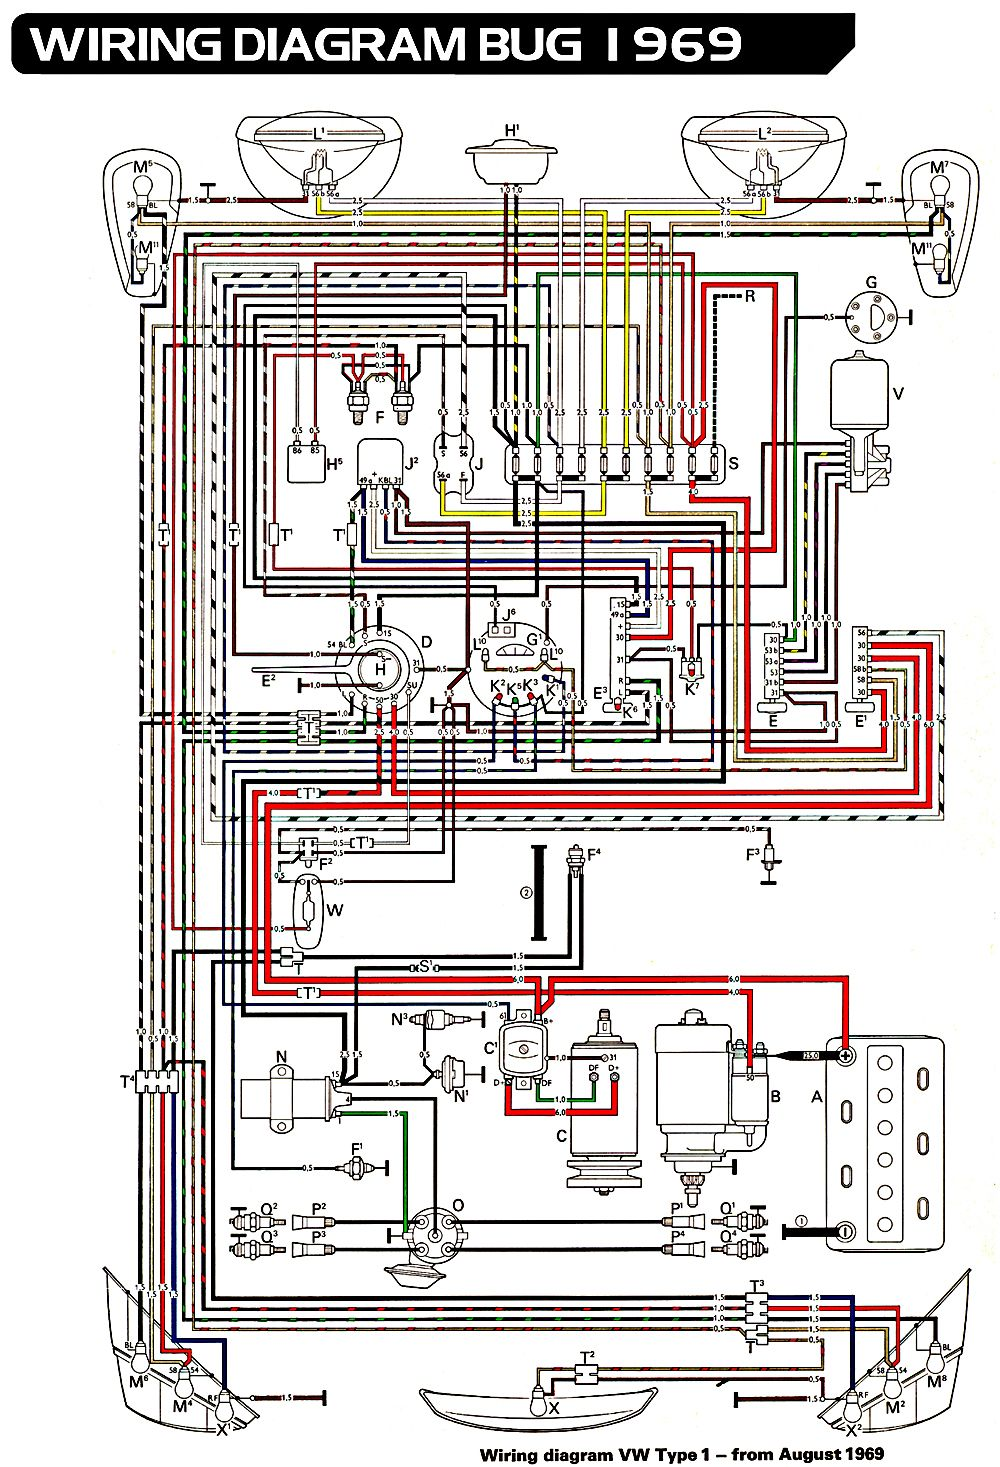 6d75c15875479254f26a32a8499d9044 volkswagen beetle wiring diagram 1966 vw beetle wiring super beetle wiring diagram at bayanpartner.co